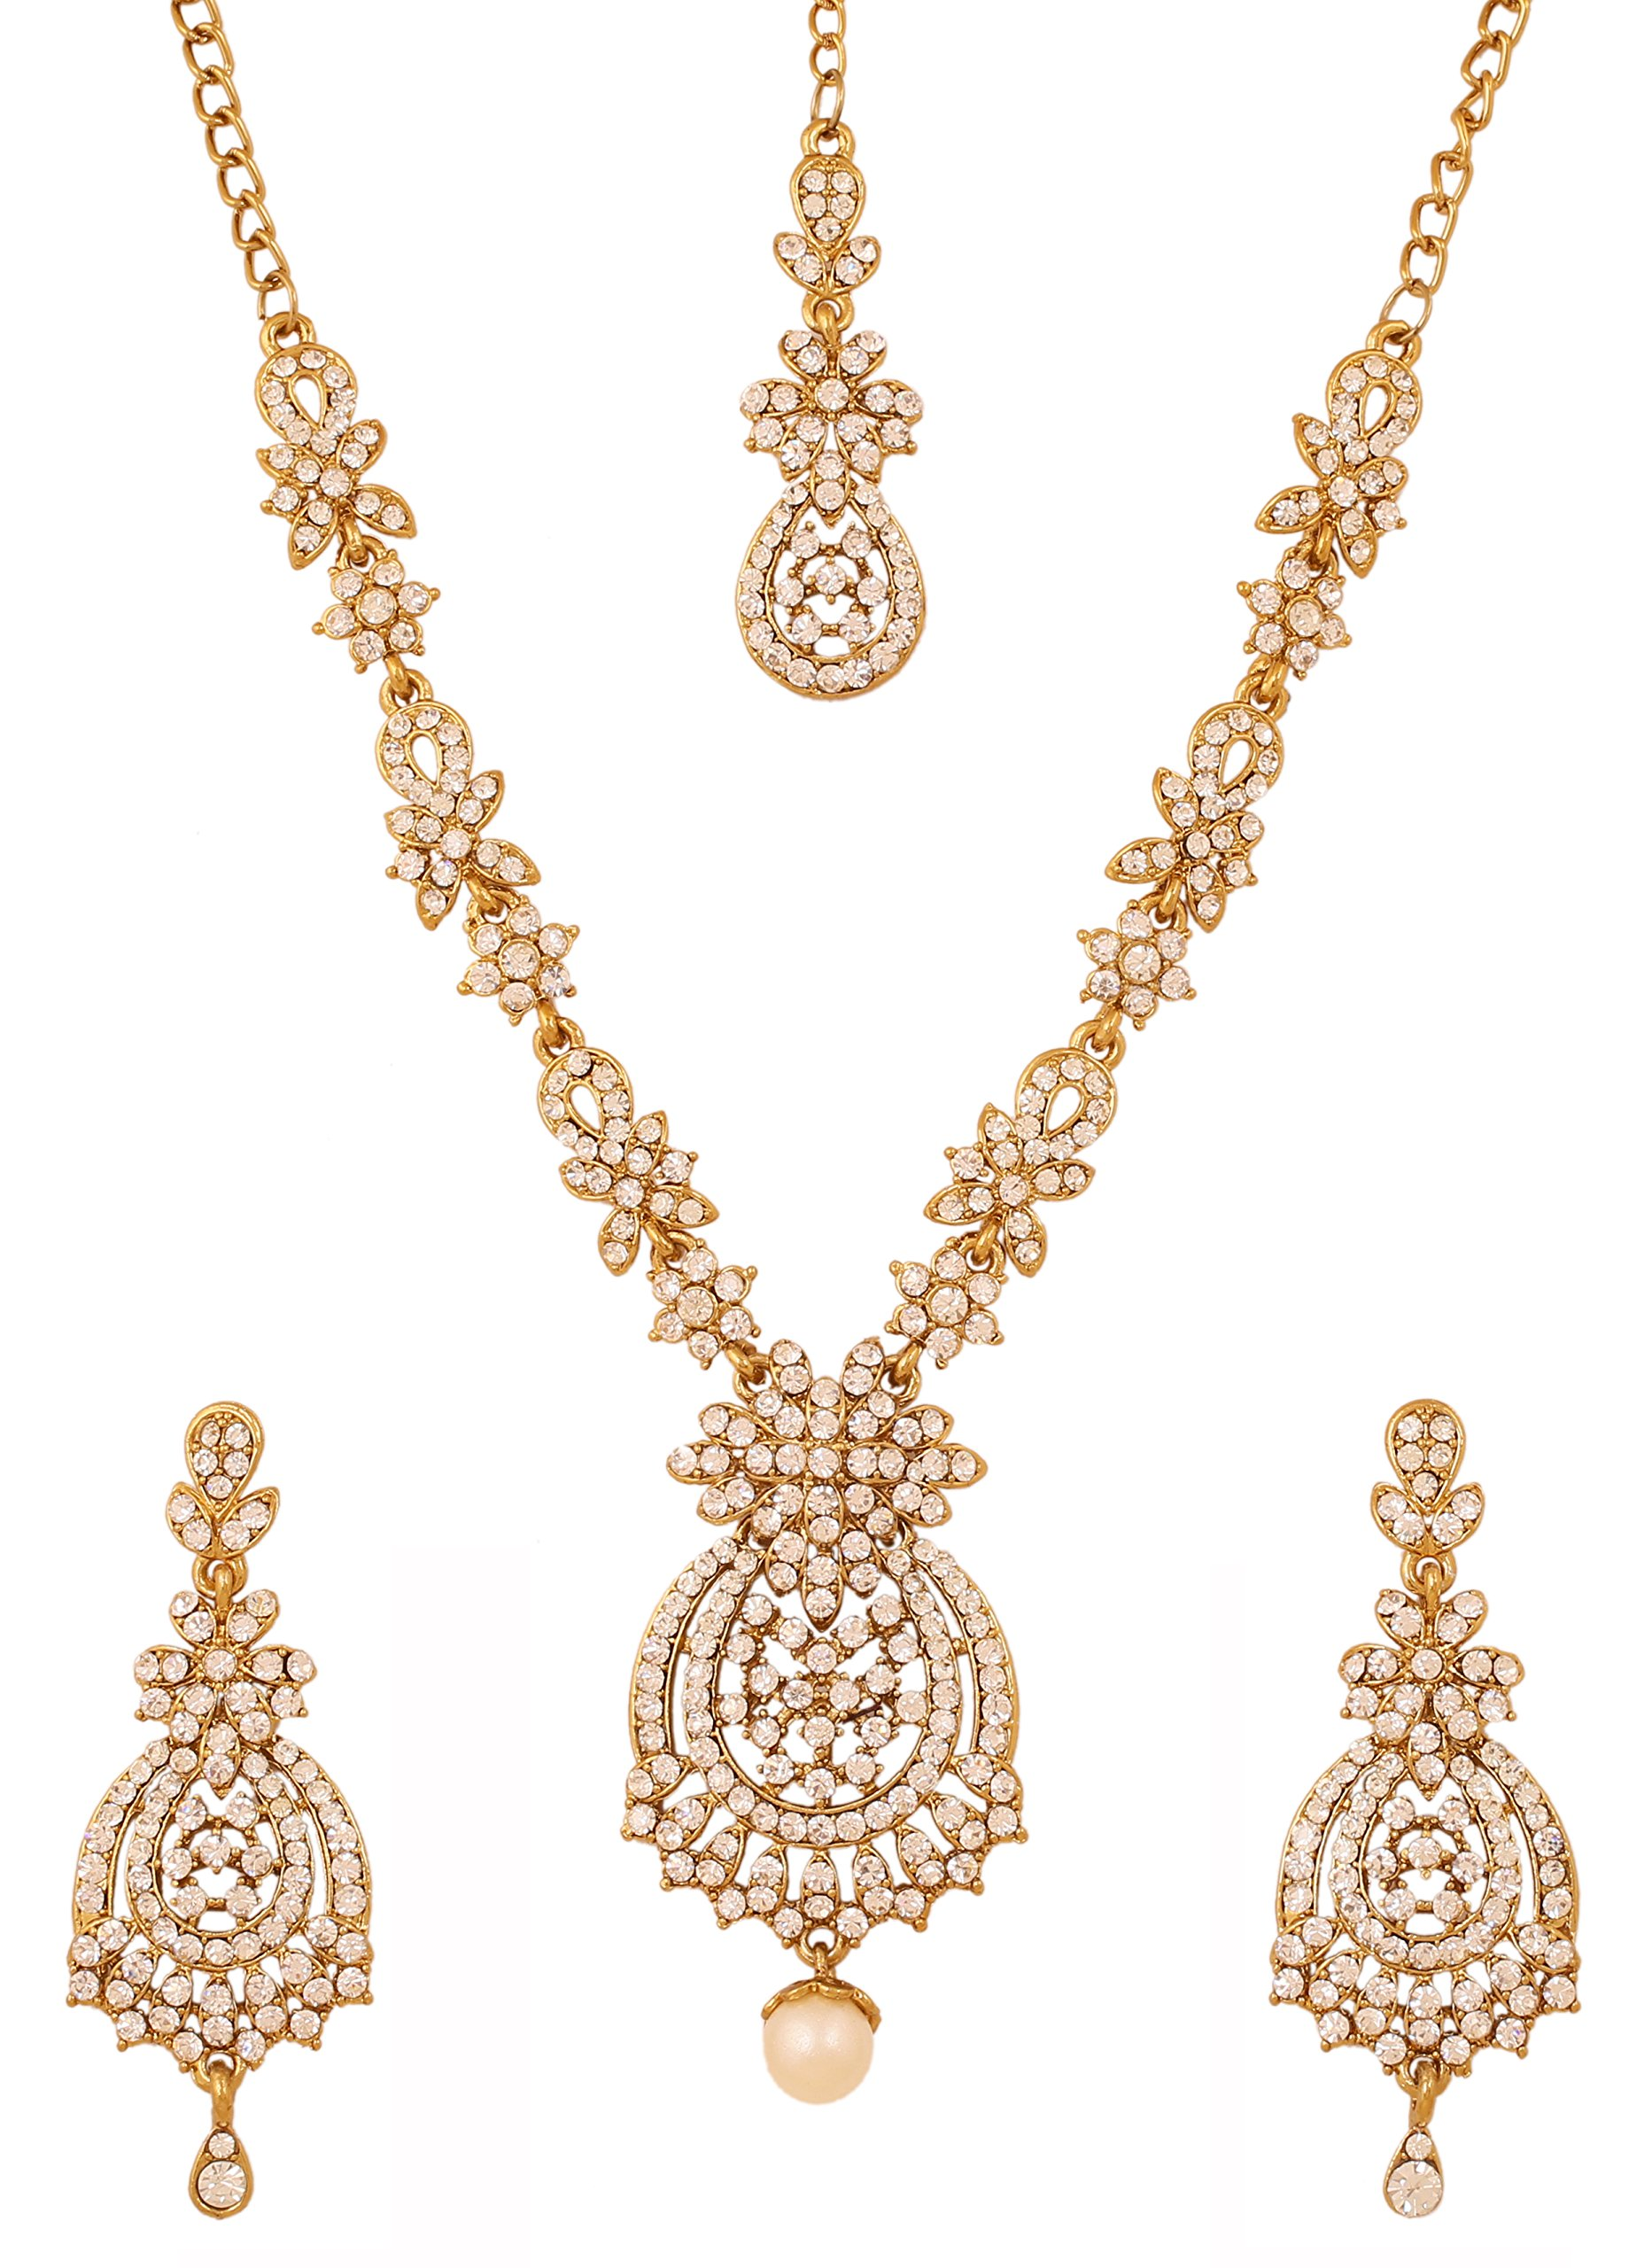 Touchstone Indian bollywood white rhinestones bridal jewelry necklace set in antique gold tone for women